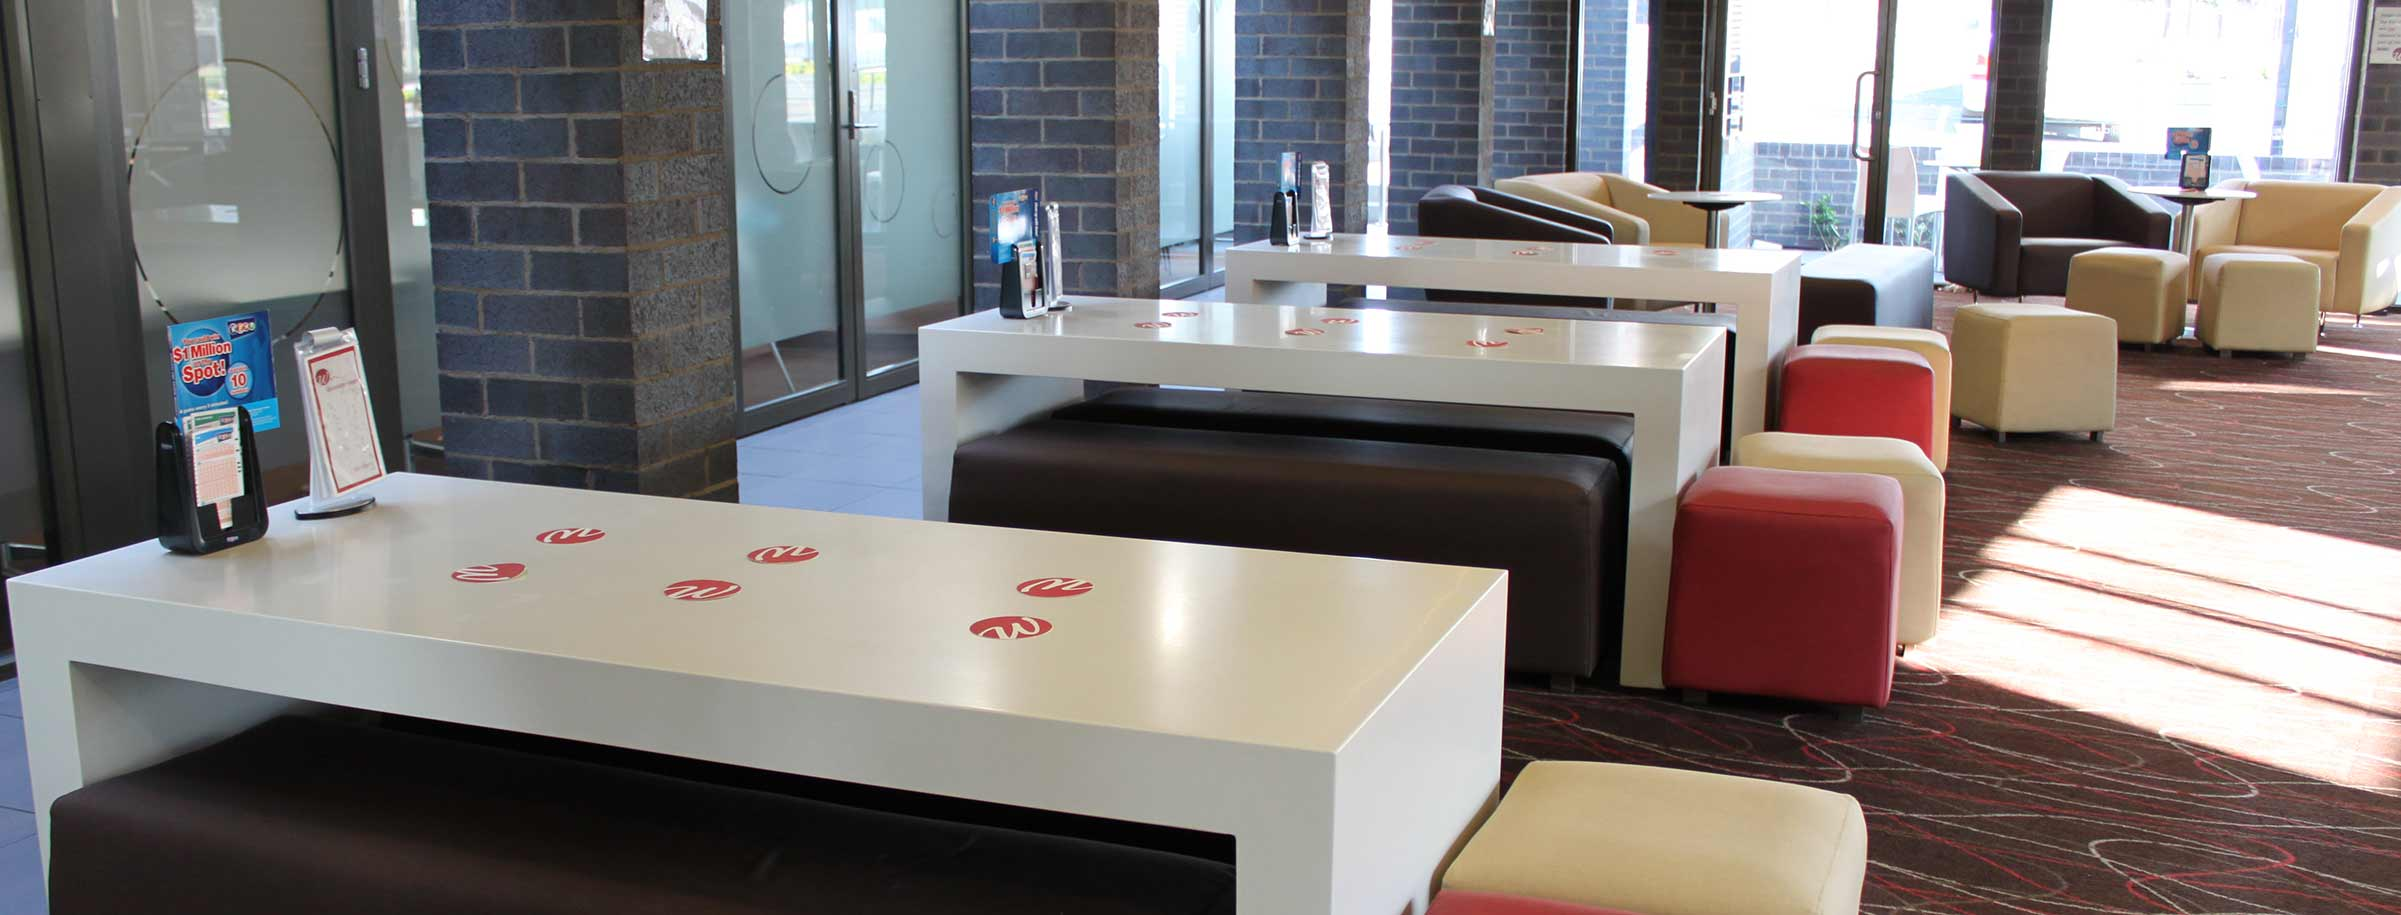 westside hotel lounge bar facilities